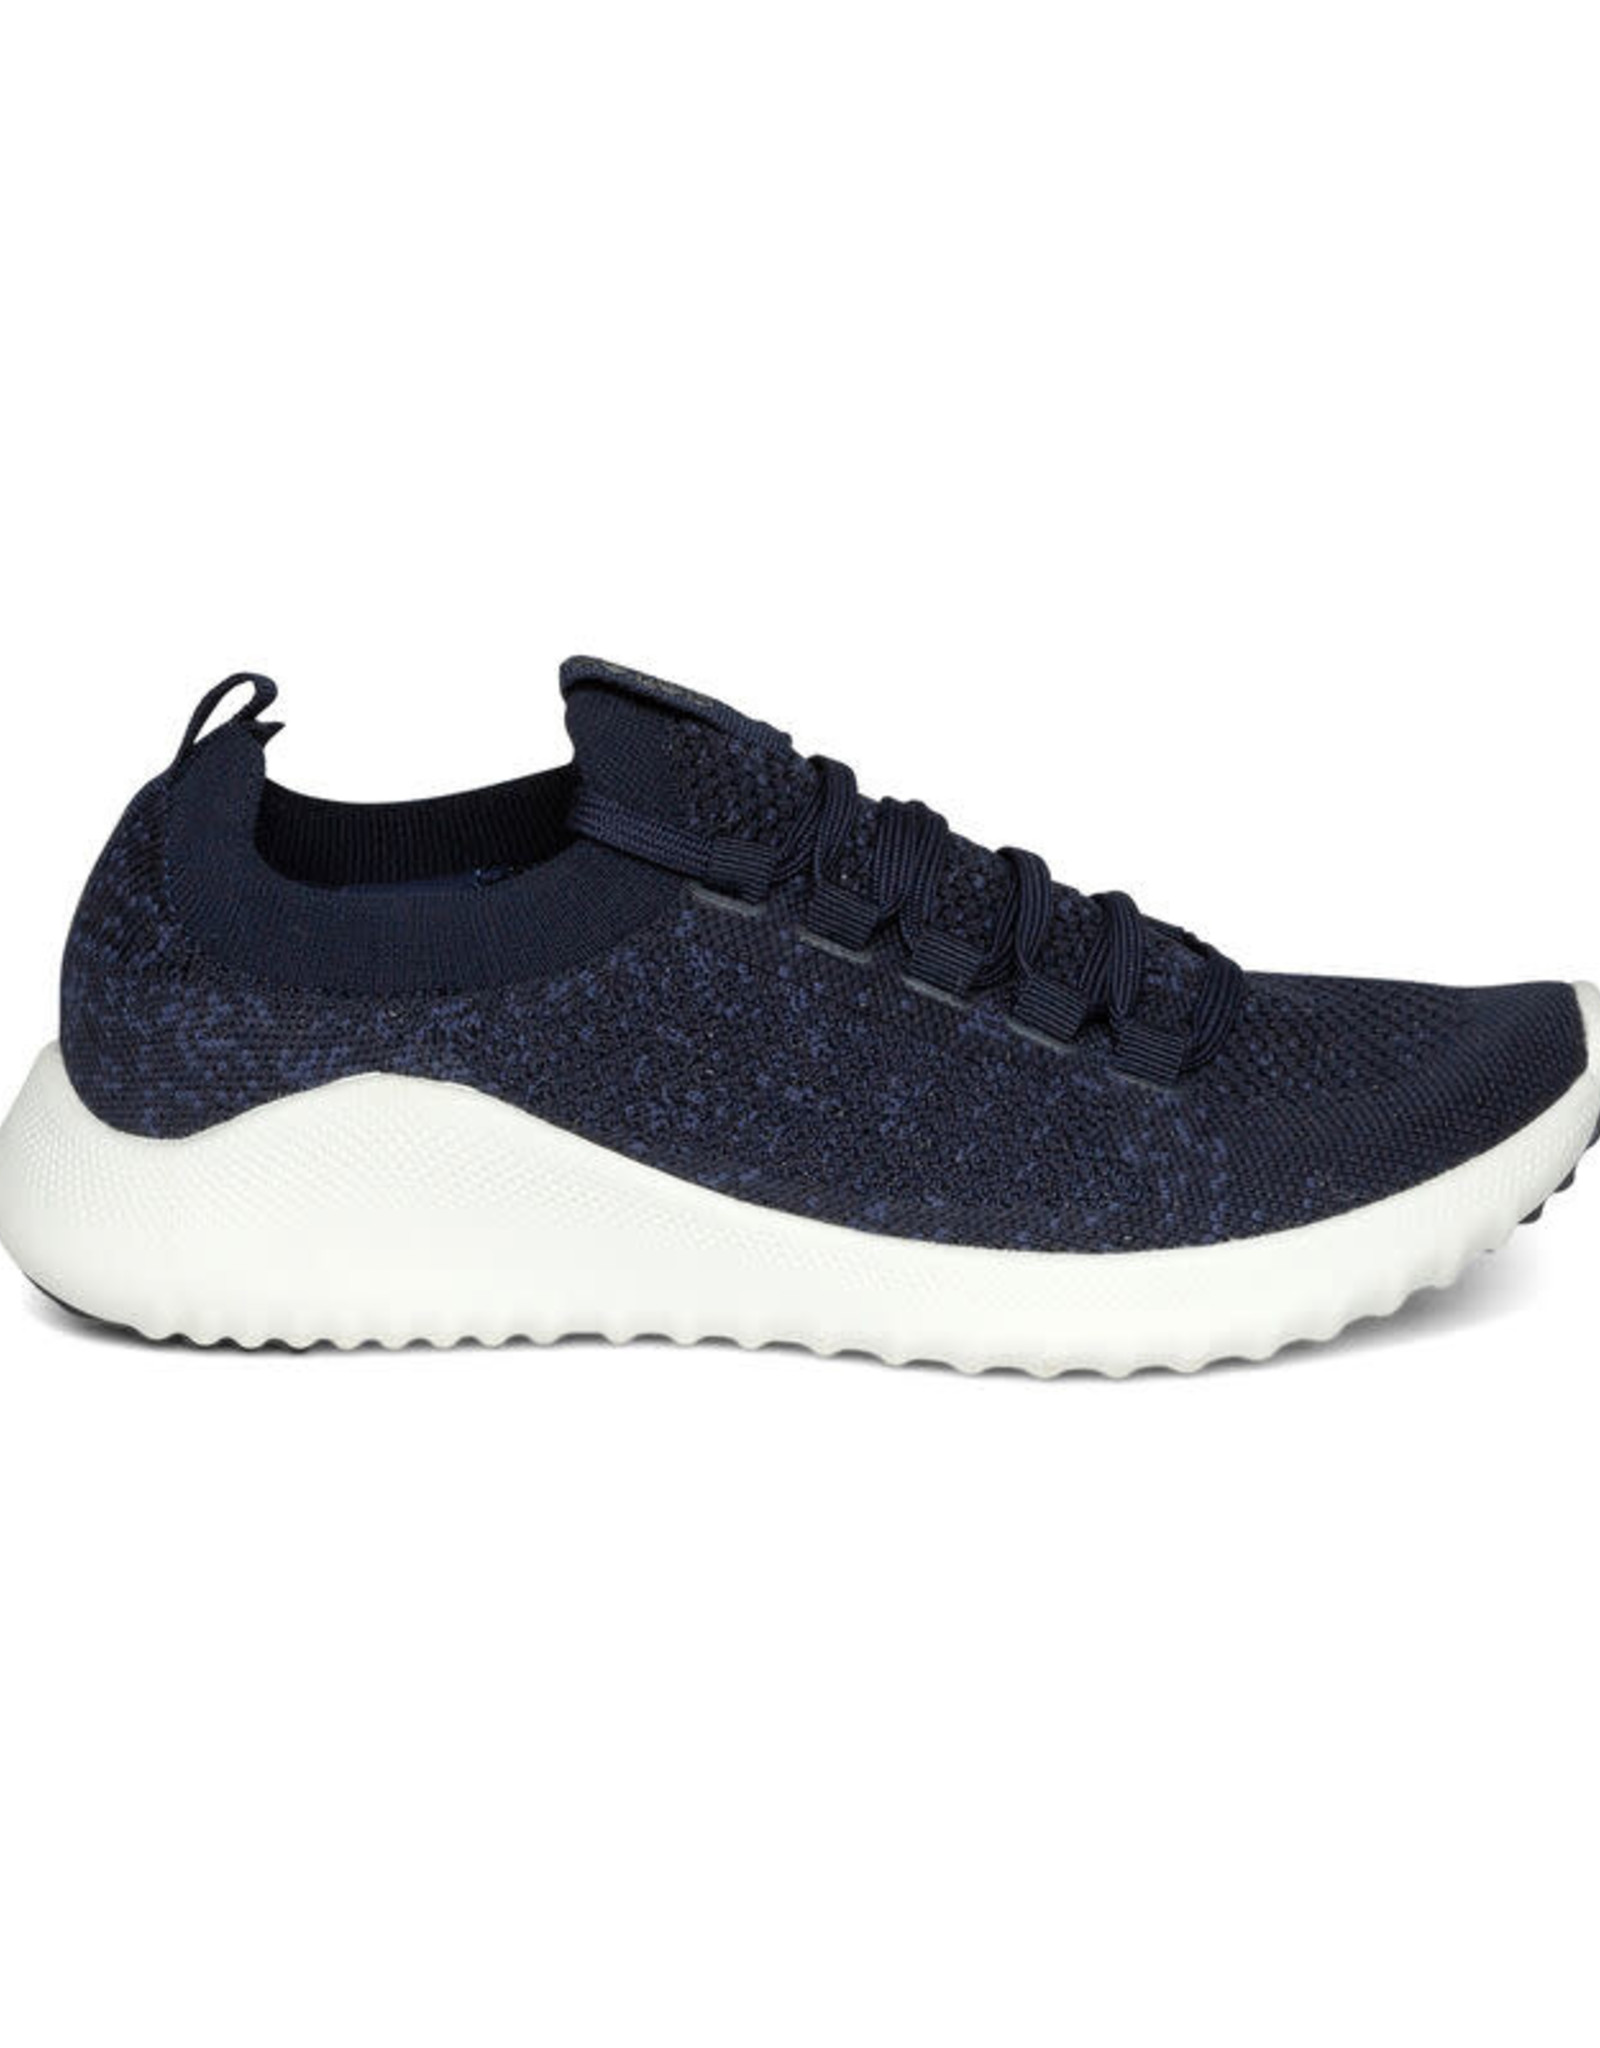 - Black Arch Support Sneakers